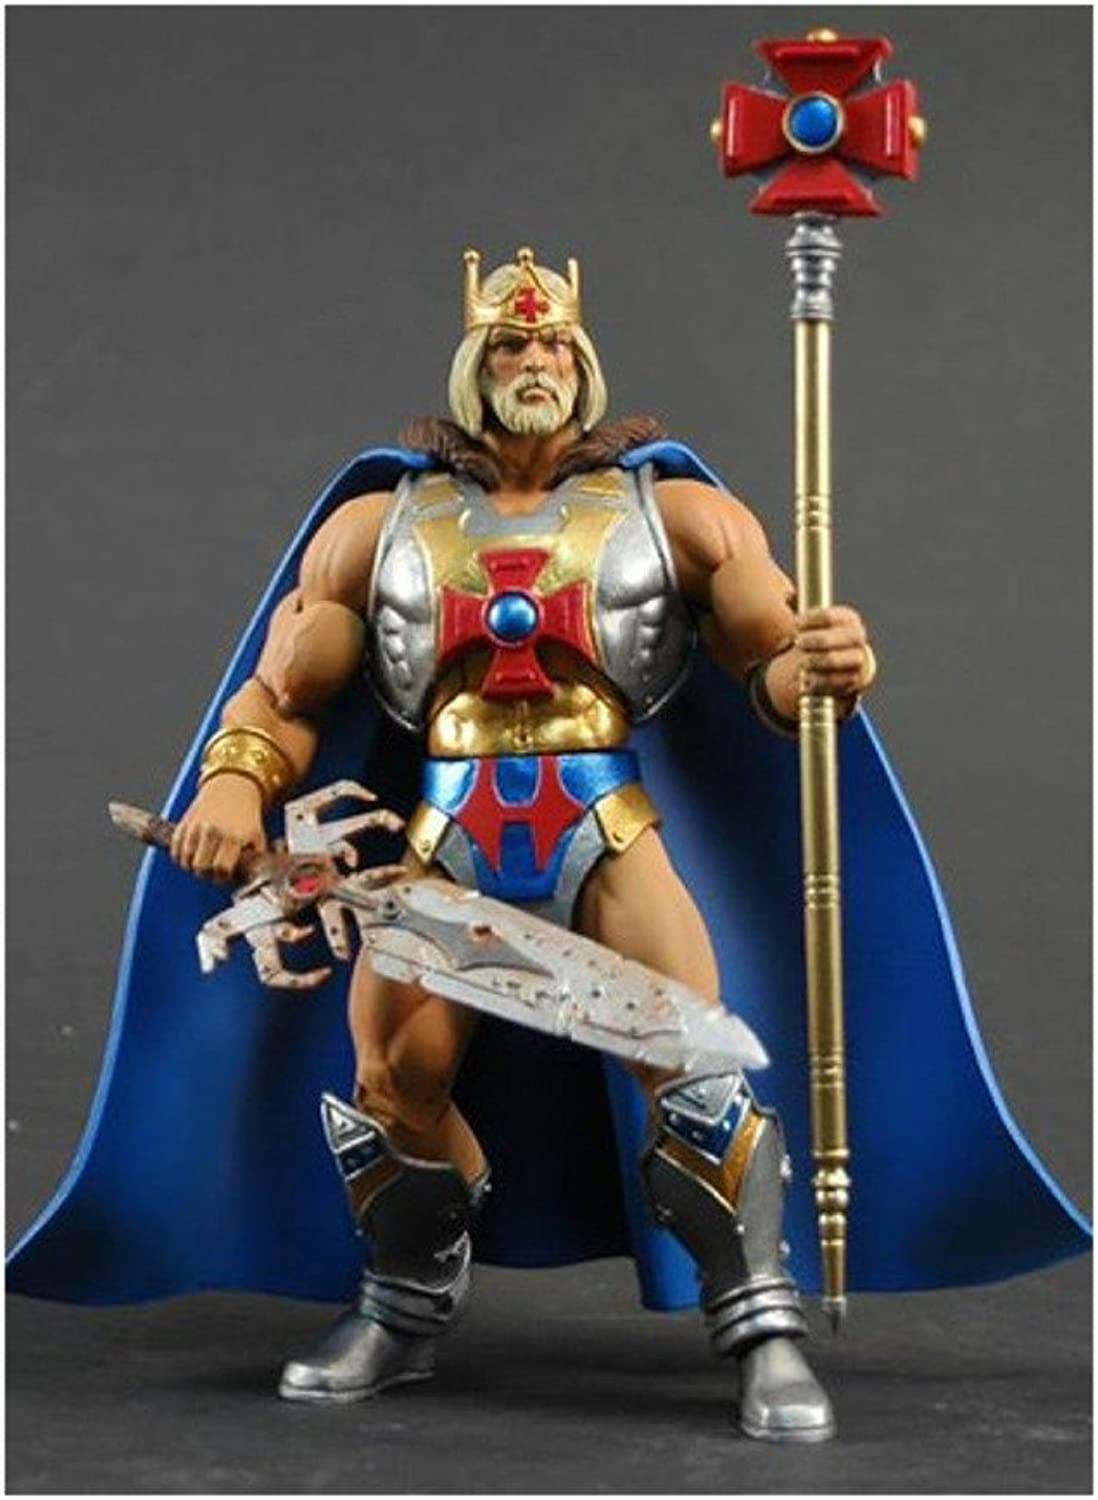 descuento Masters Masters Masters of the Universe Classics King He-Man with Subternia Map Exclusive by Mattel  todos los bienes son especiales